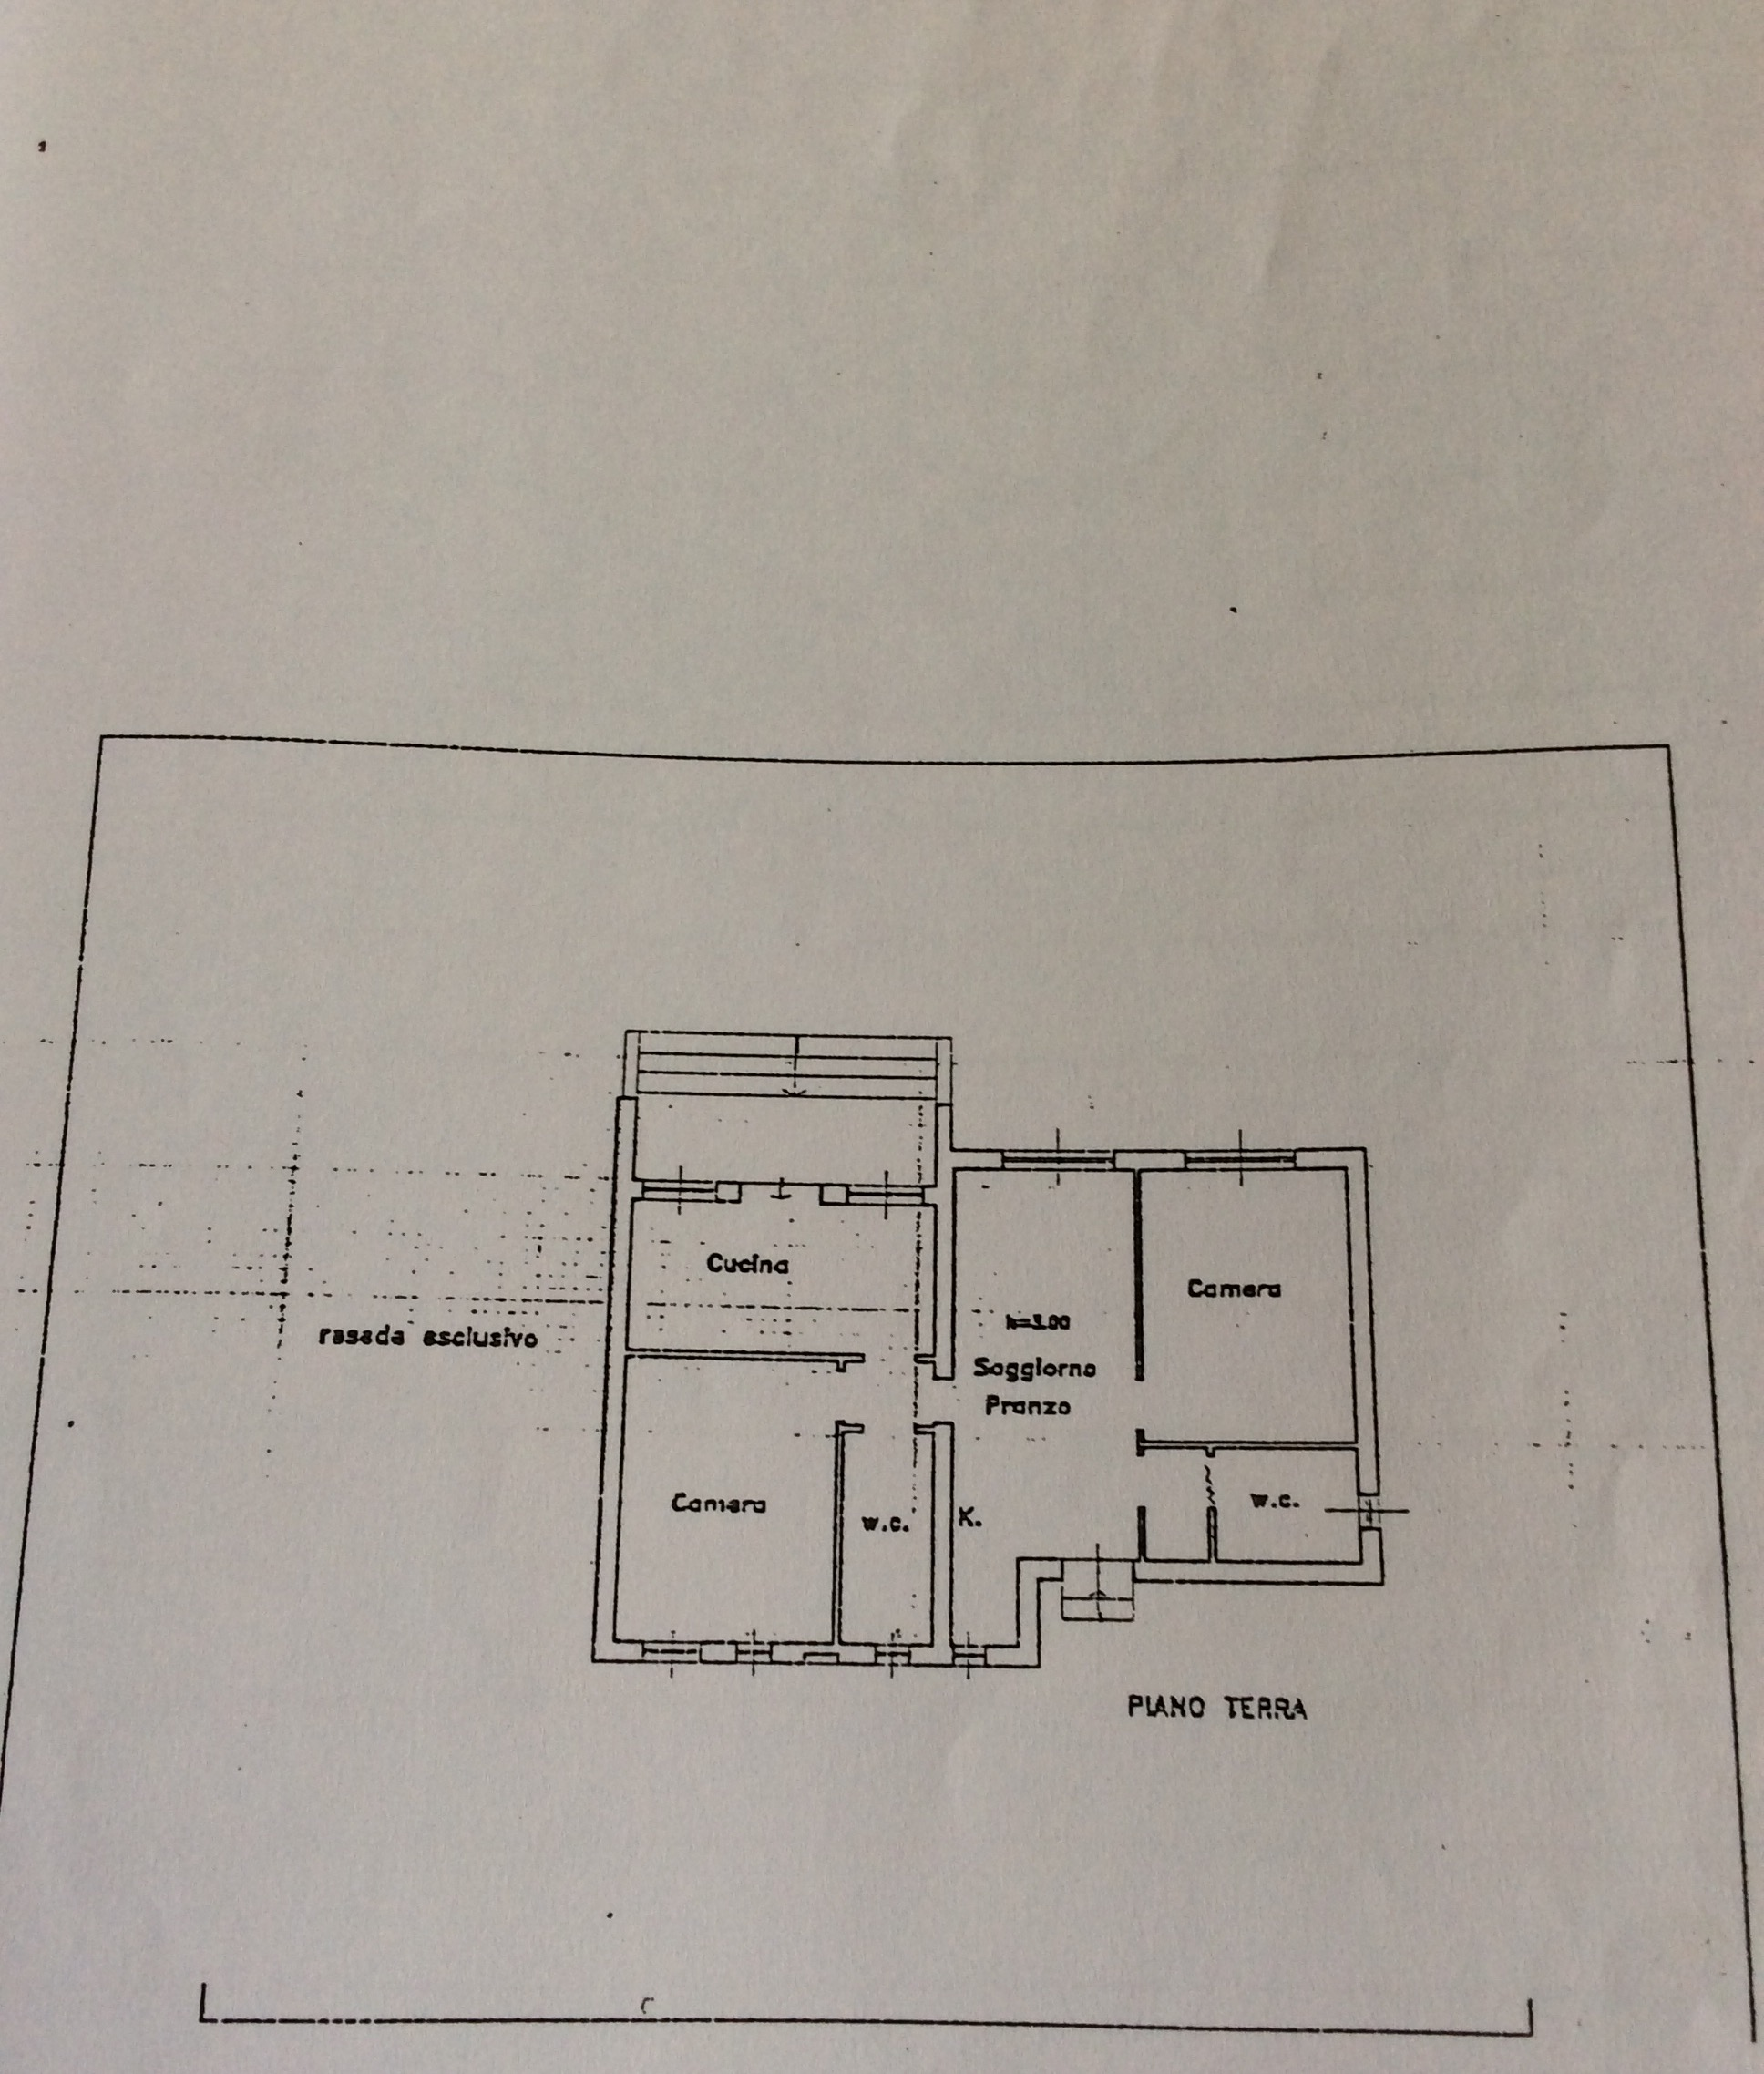 Single-family house for sale, ref. R/291 (Plan 1/1)